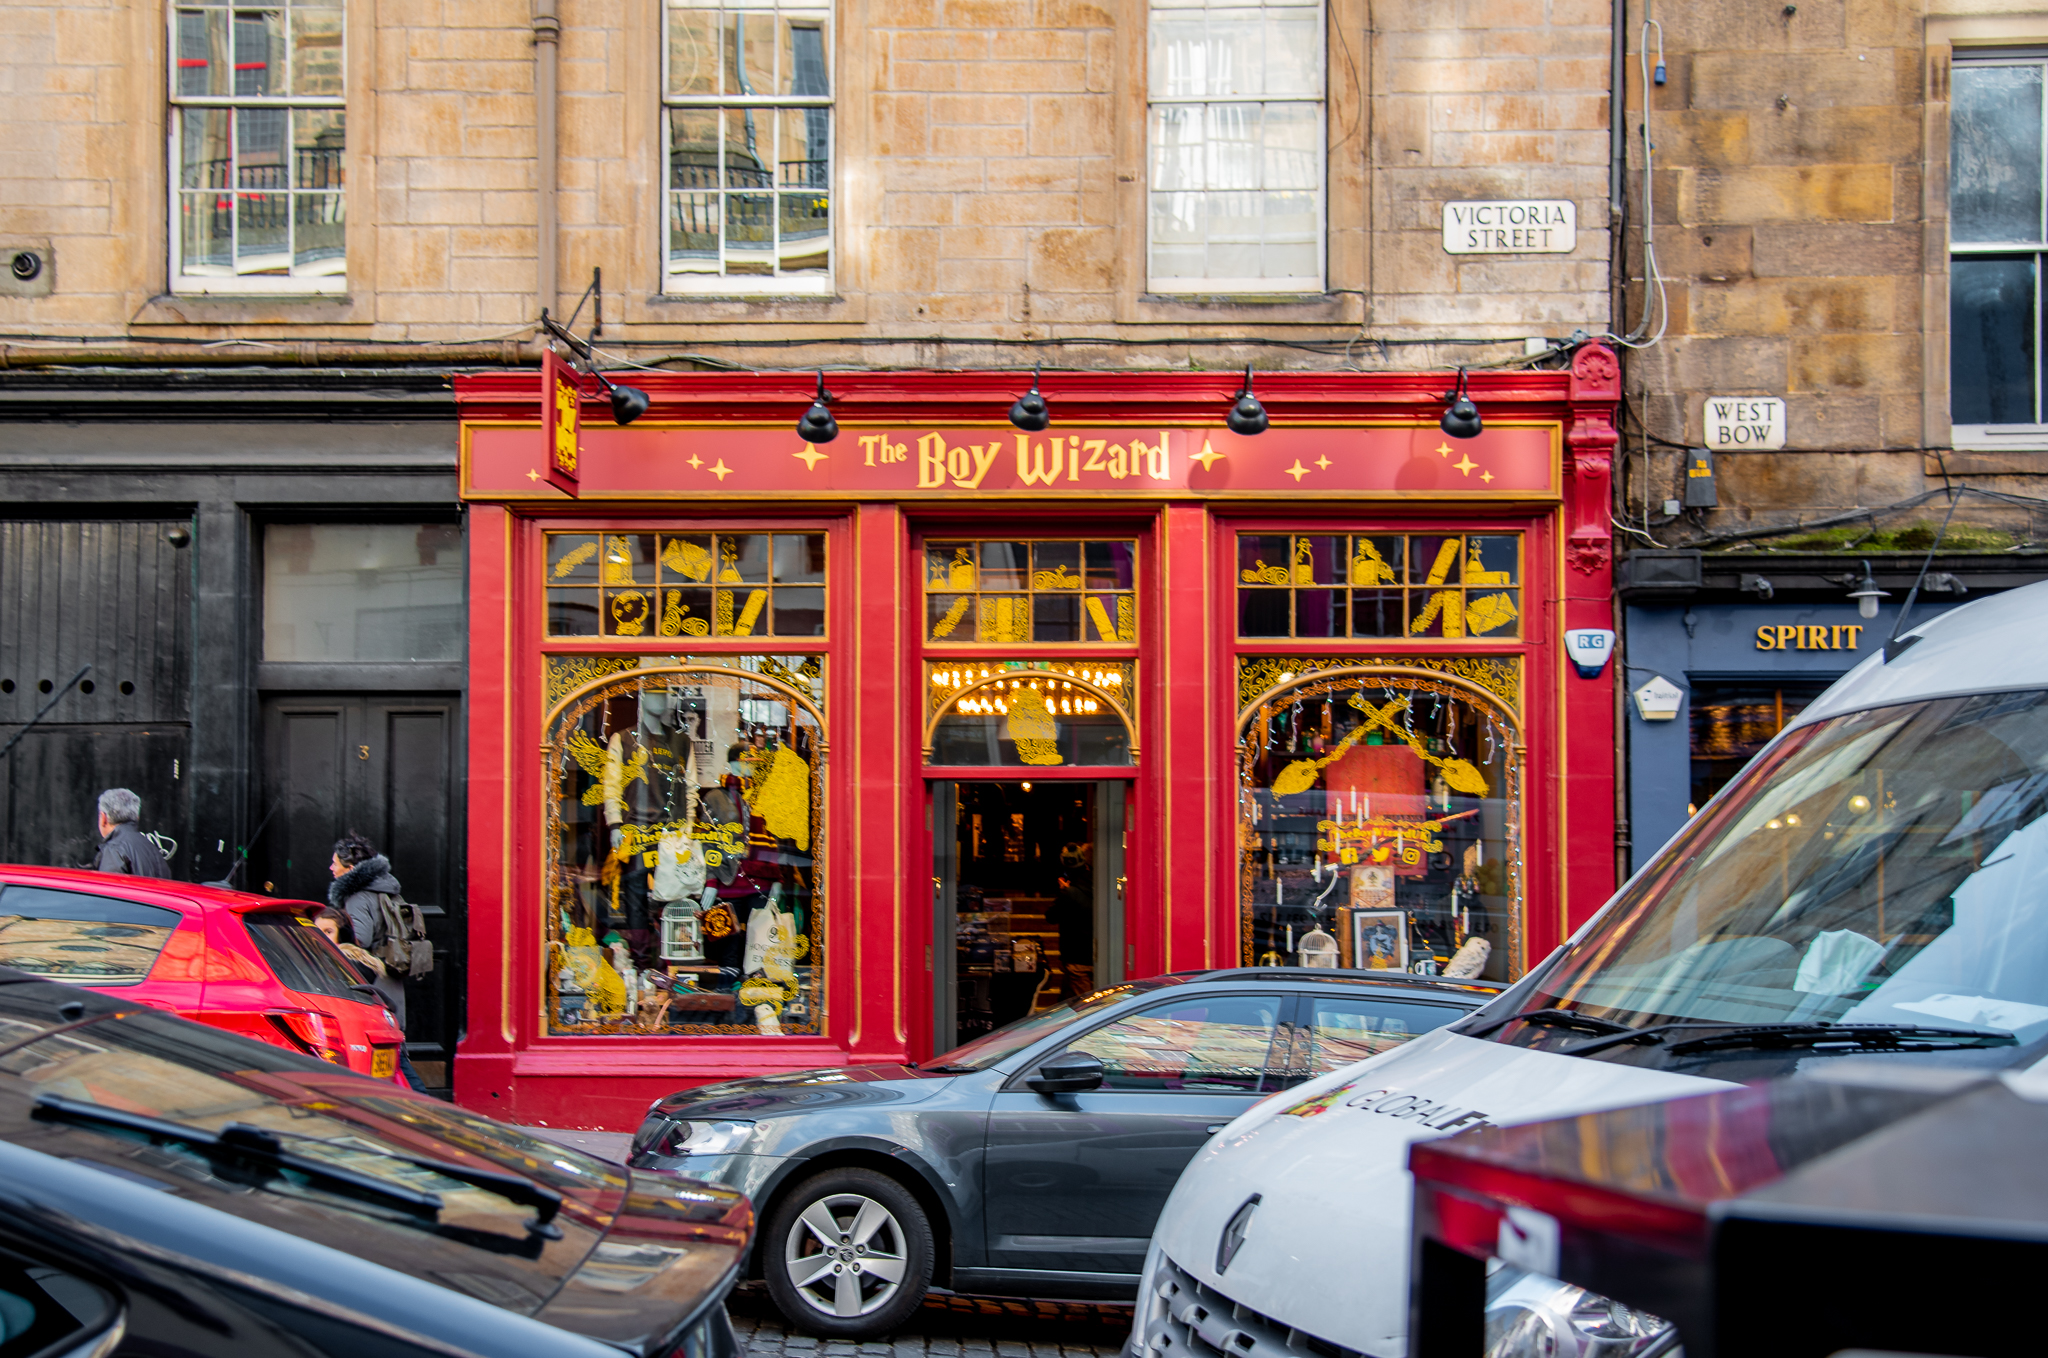 harry potter, jk rowling, edinburgh, magic , shops, victoria street, the boy wizard